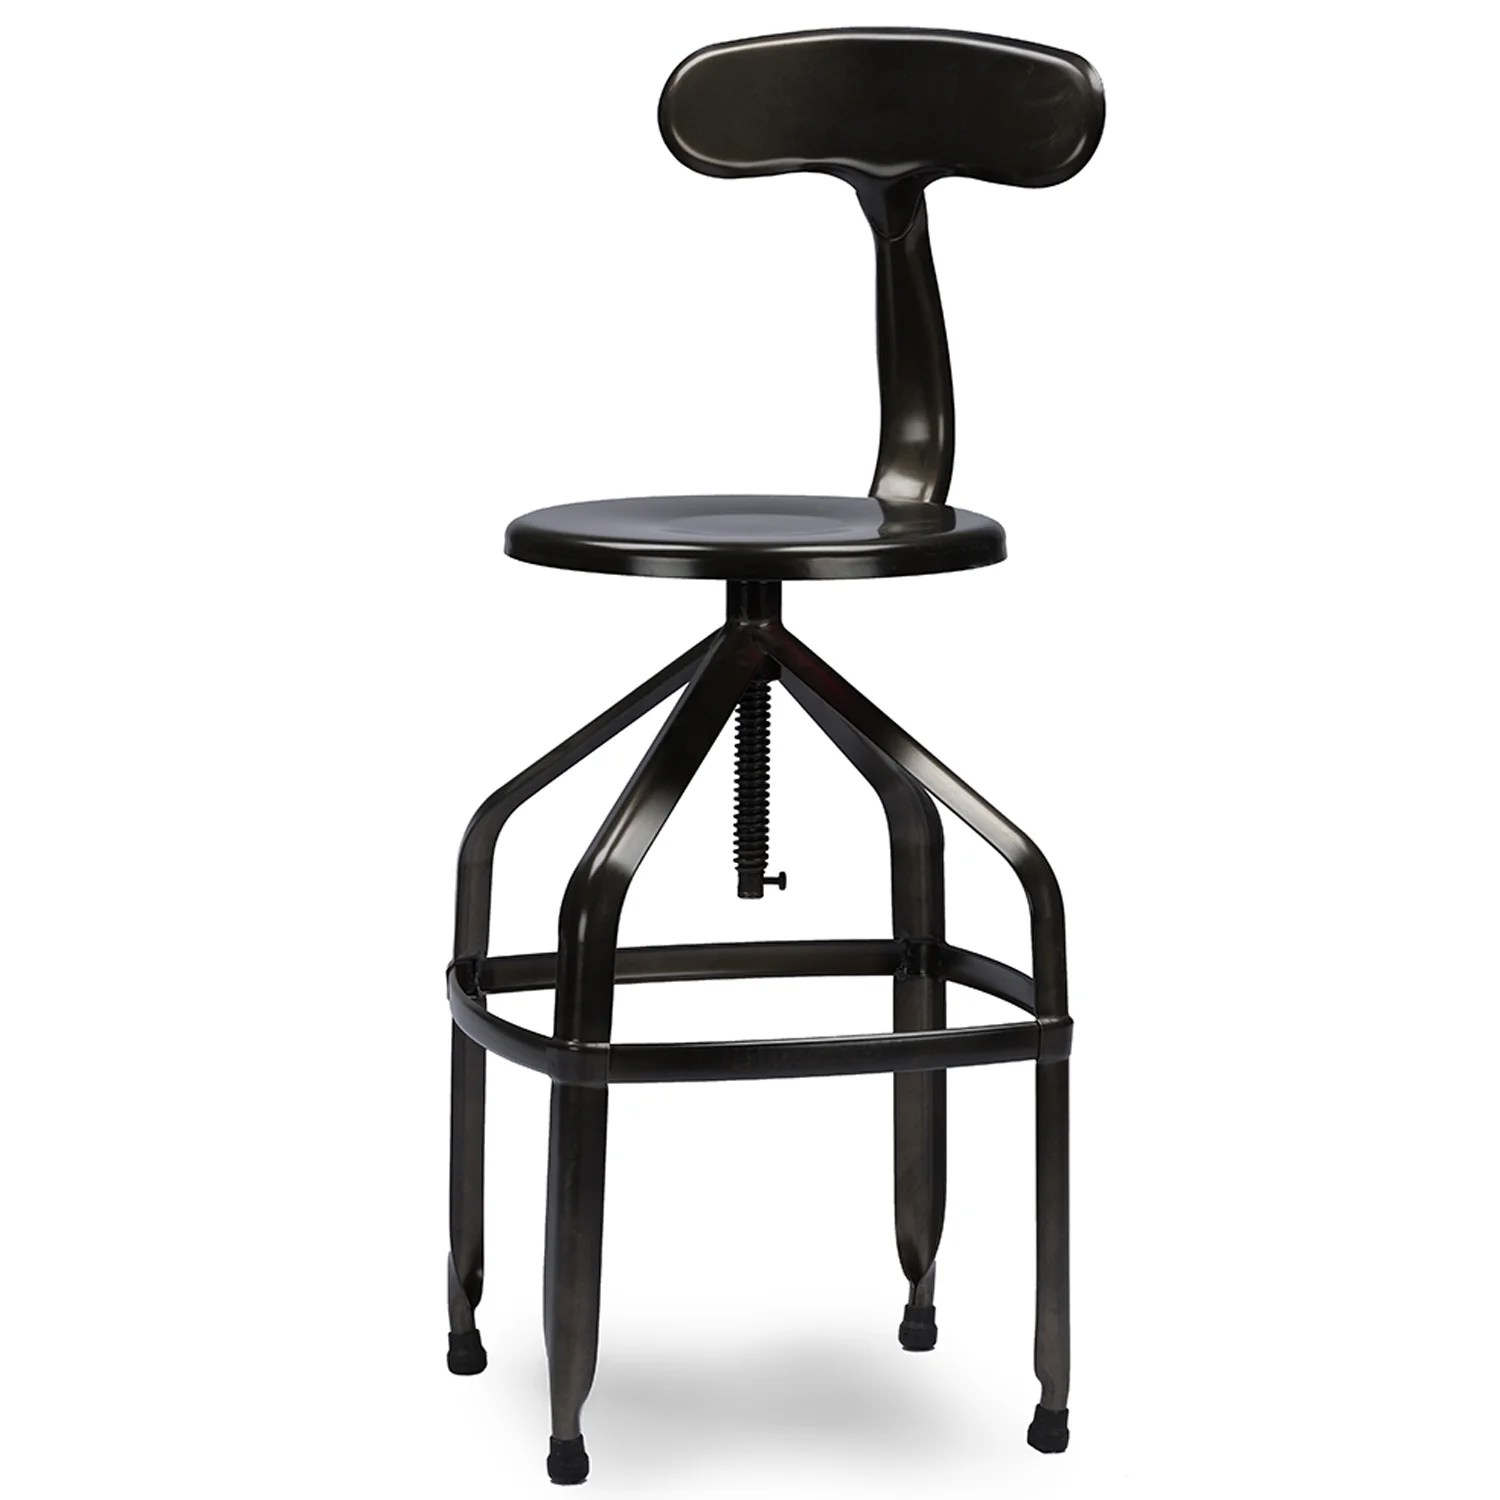 Cheap High Bar Stools Wholesale Interiors Baxton Studio Adjustable Height Bar